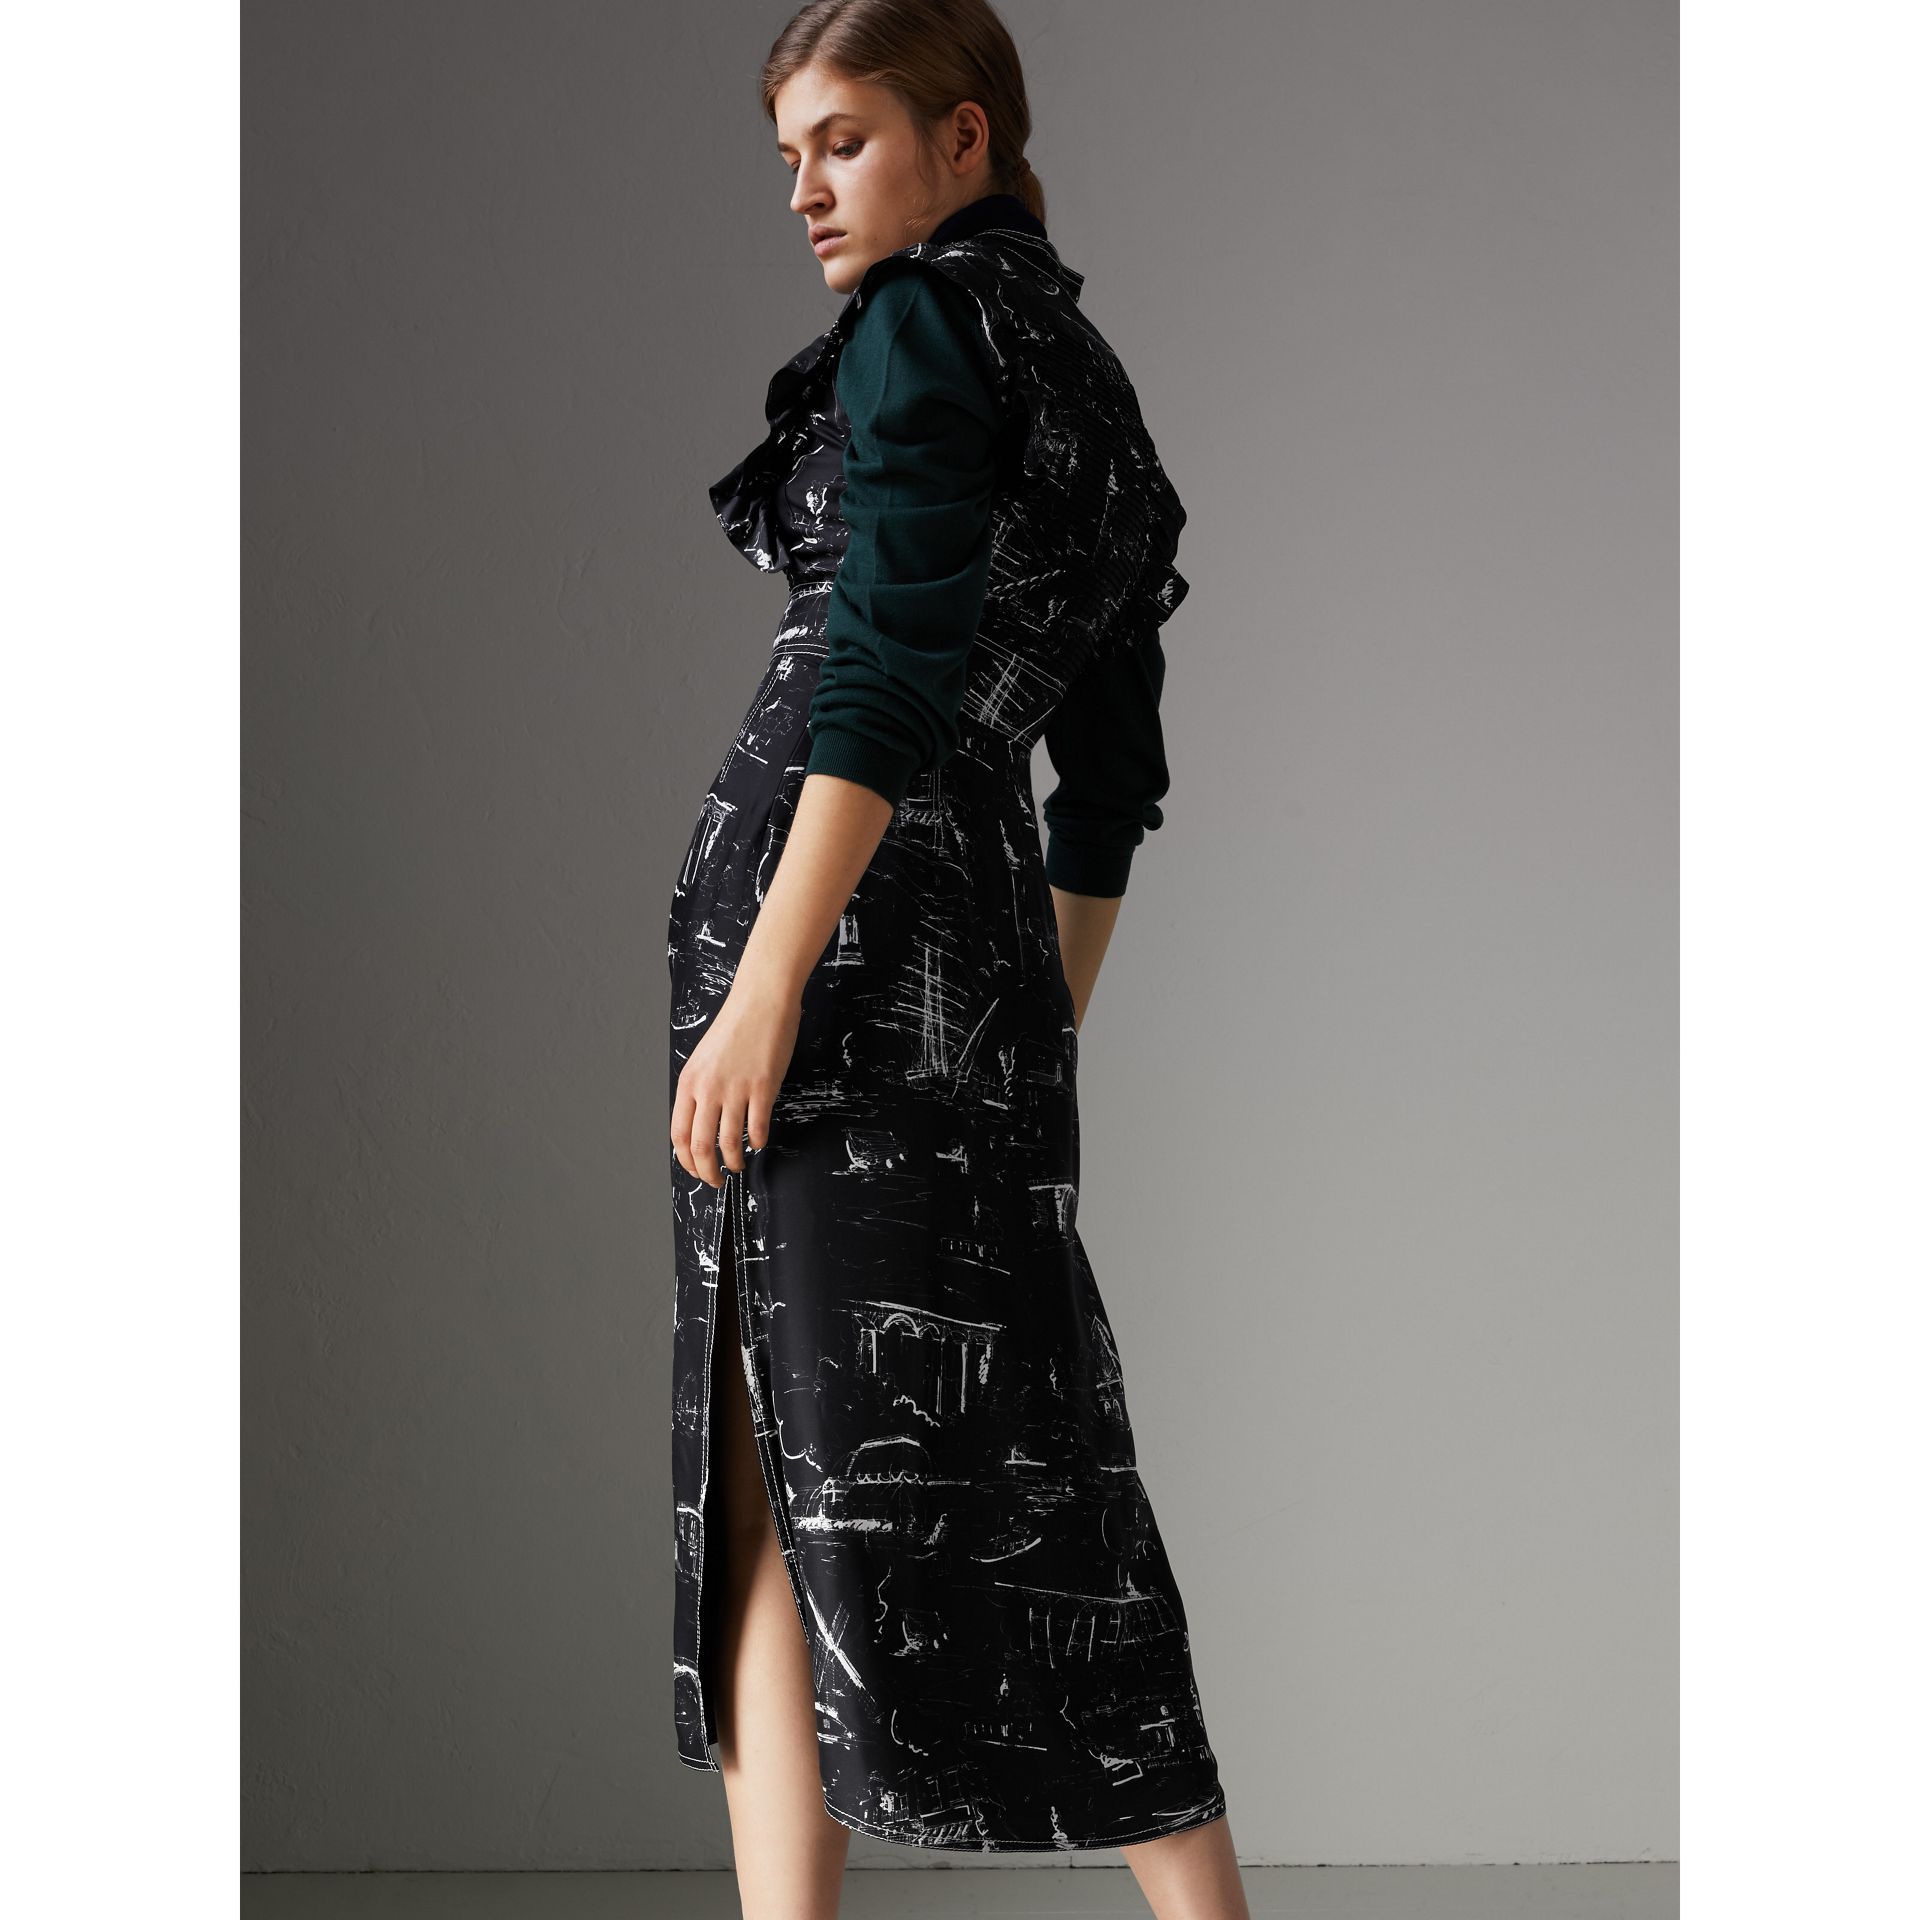 Ruffle Detail Landmark Print Silk Dress in Black - Women | Burberry - gallery image 2